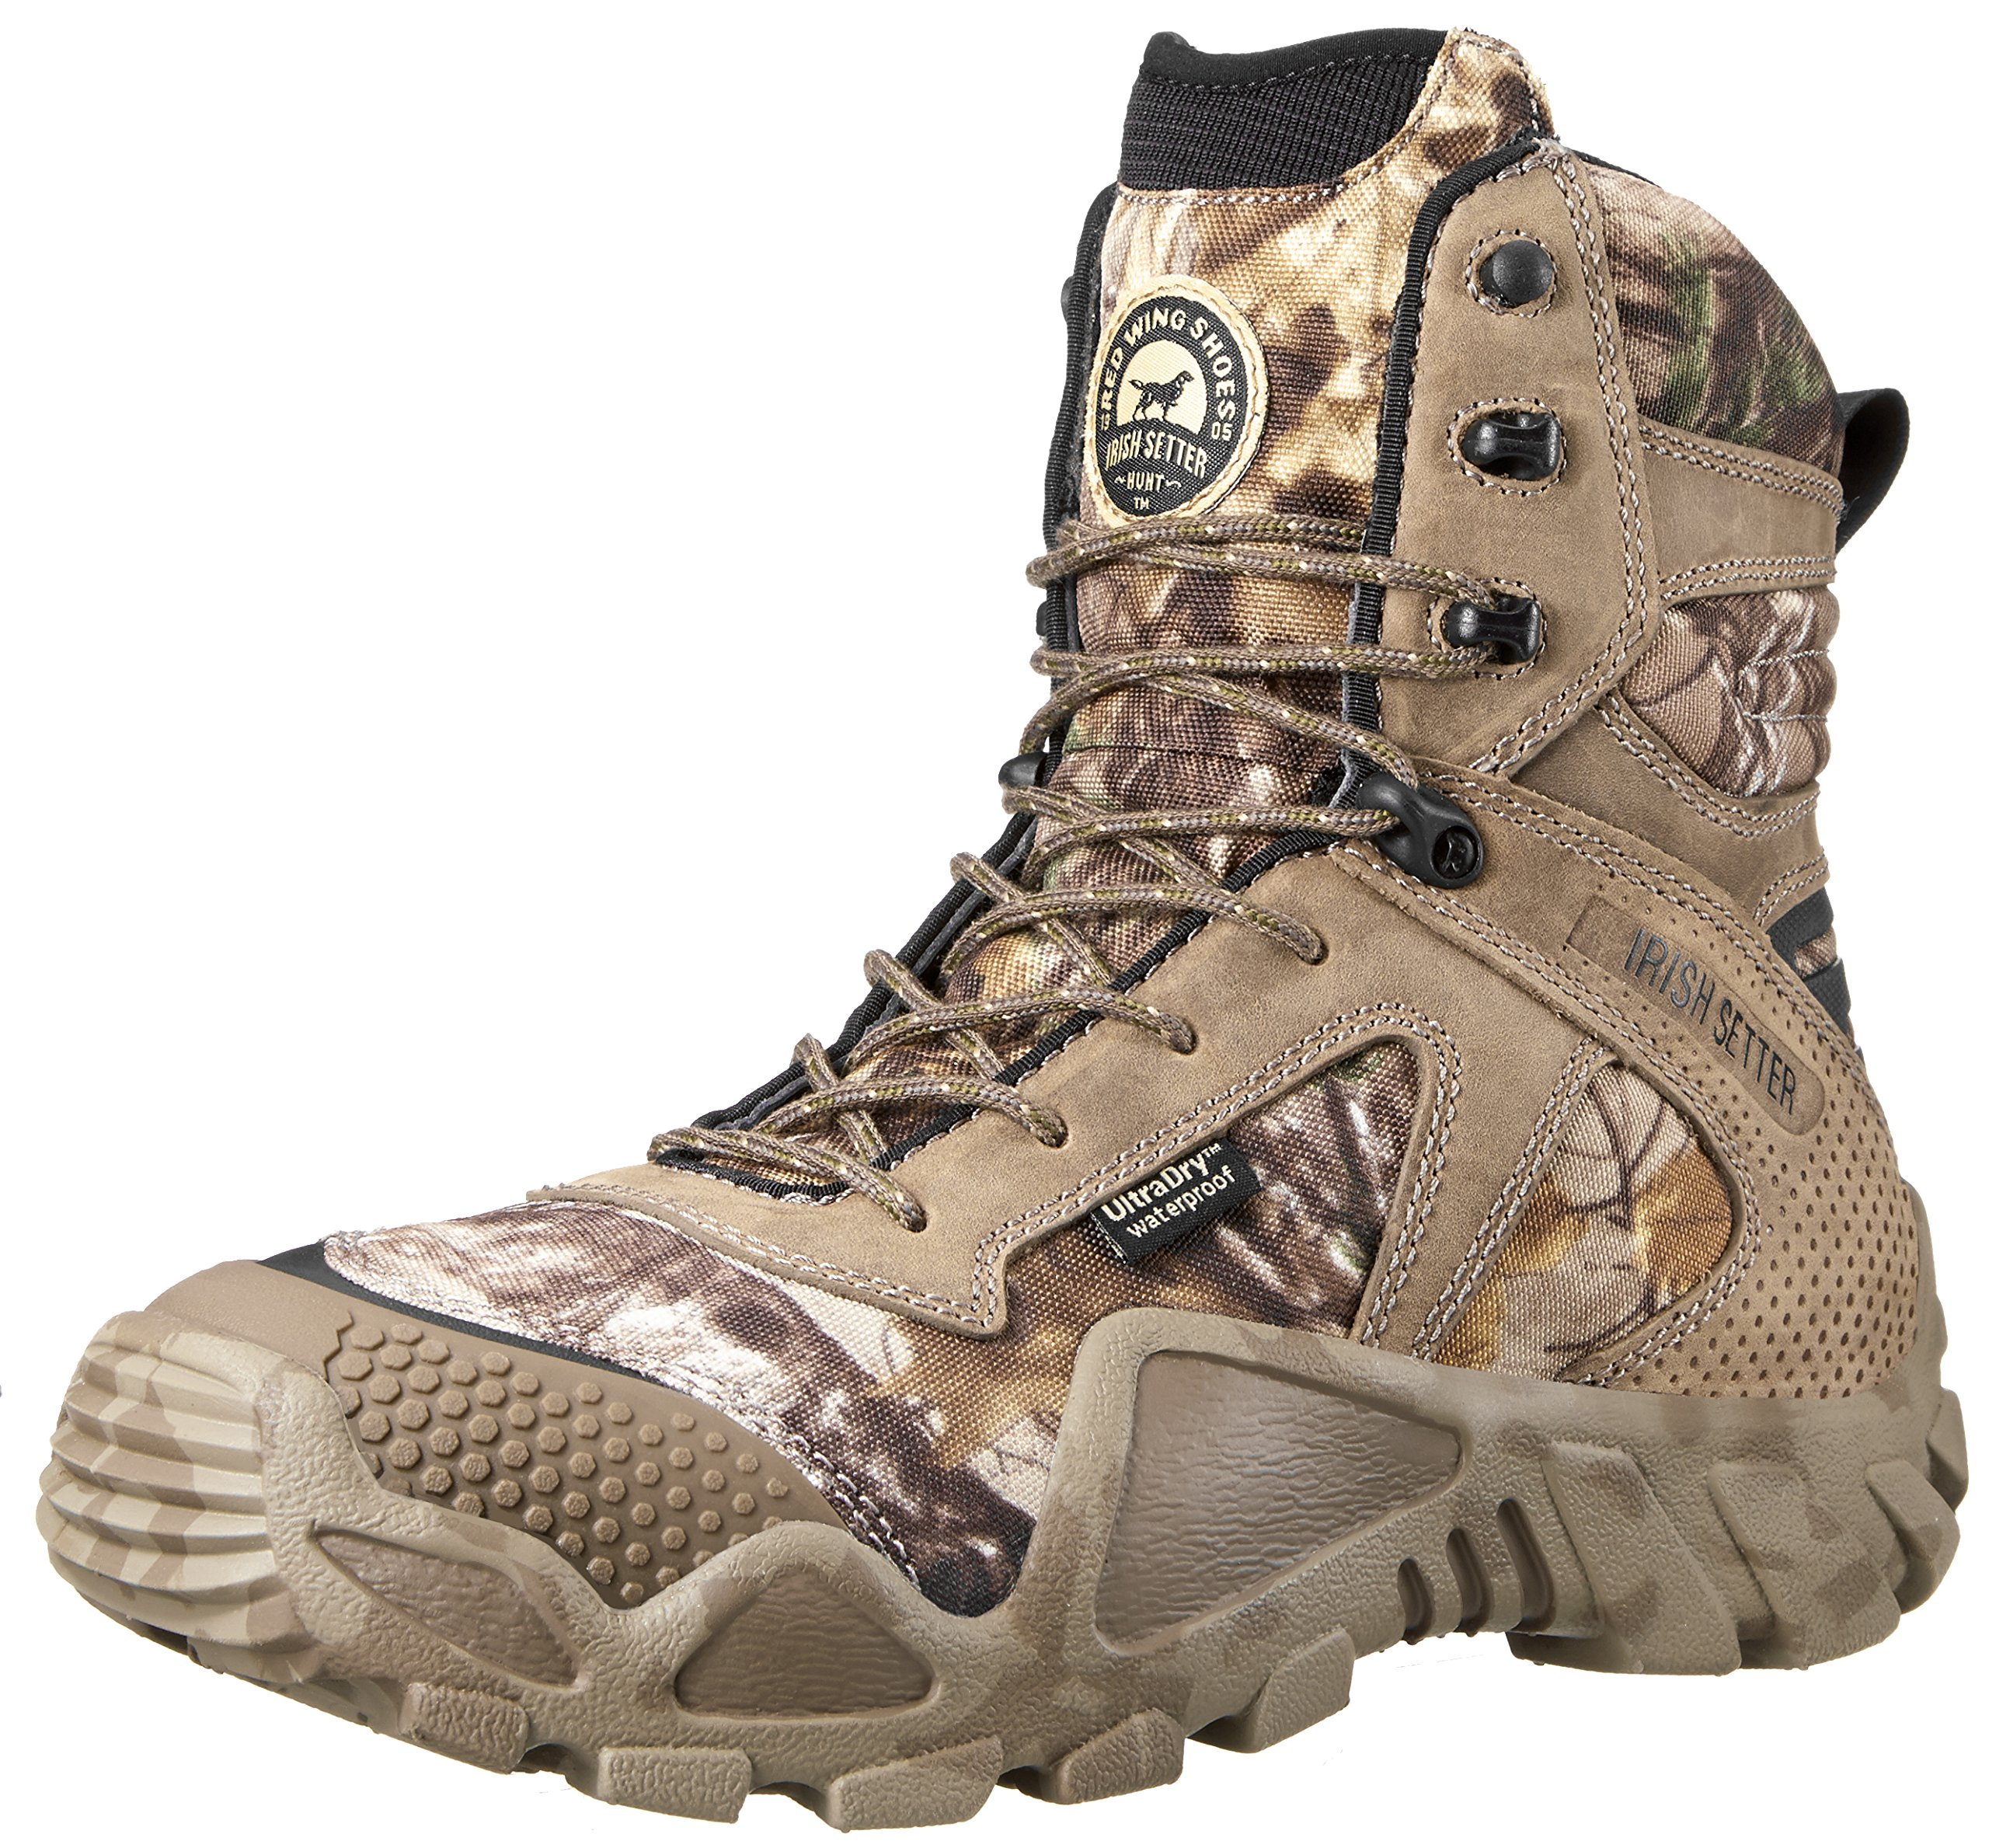 Irish Setter Men's 2870 Vaprtrek Waterproof 8'' Hunting Boot, Realtree Xtra Camouflage,9.5 EE US